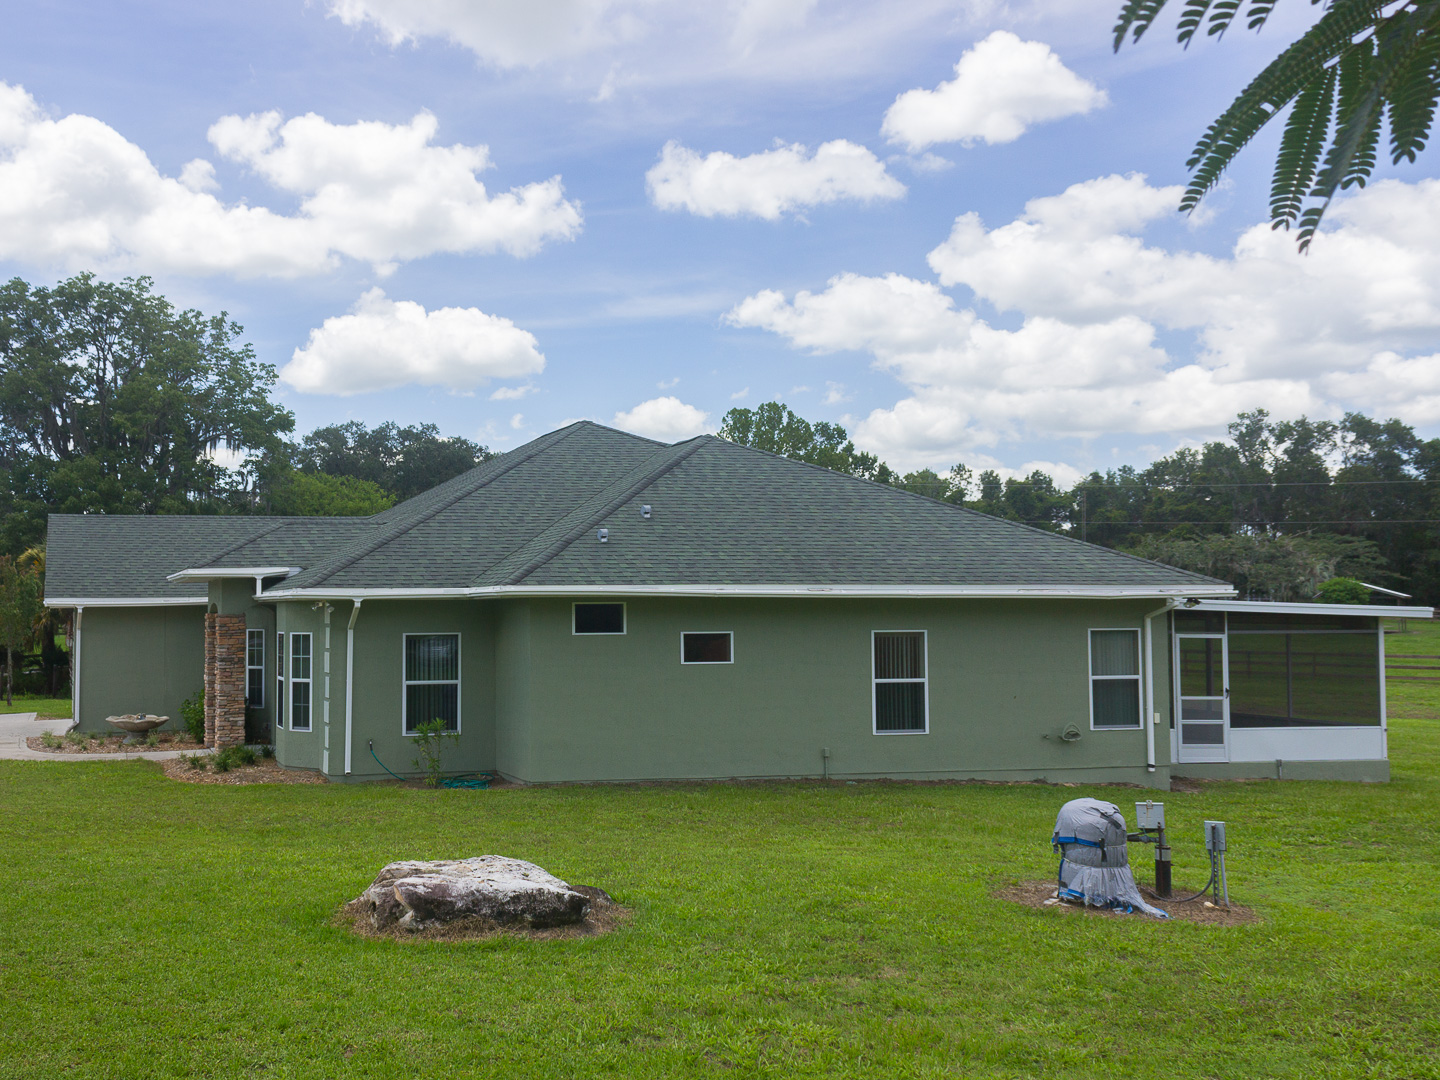 7899 NW 118th Court-105